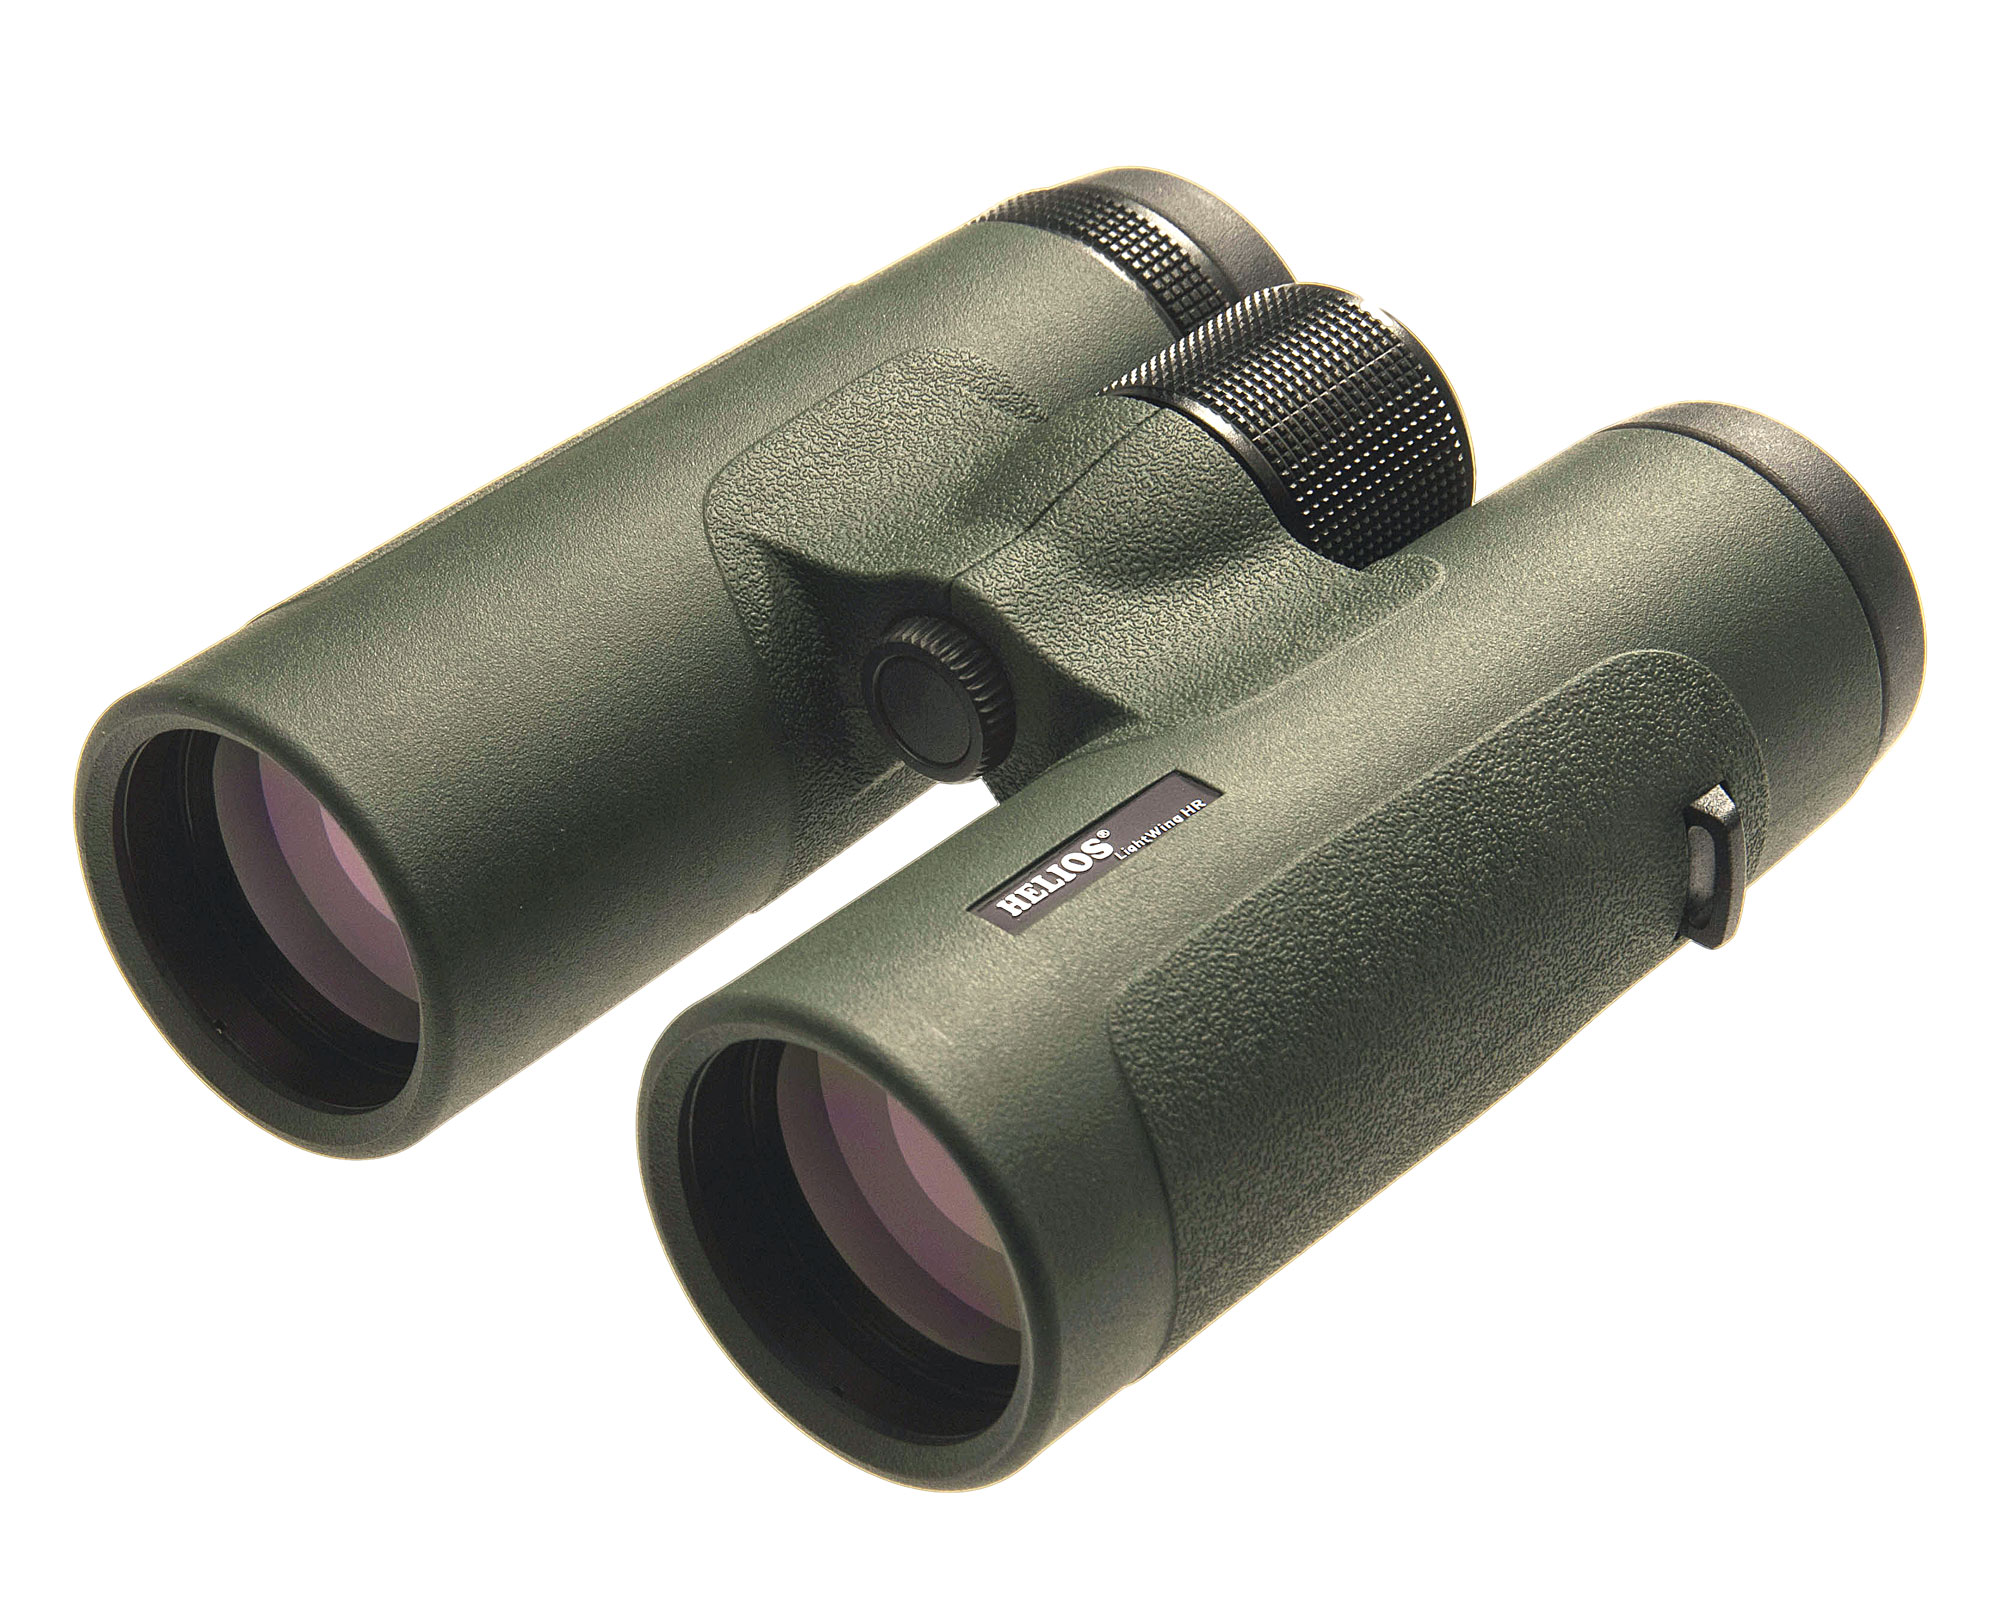 Helios LightWing HR 42mm Binoculars